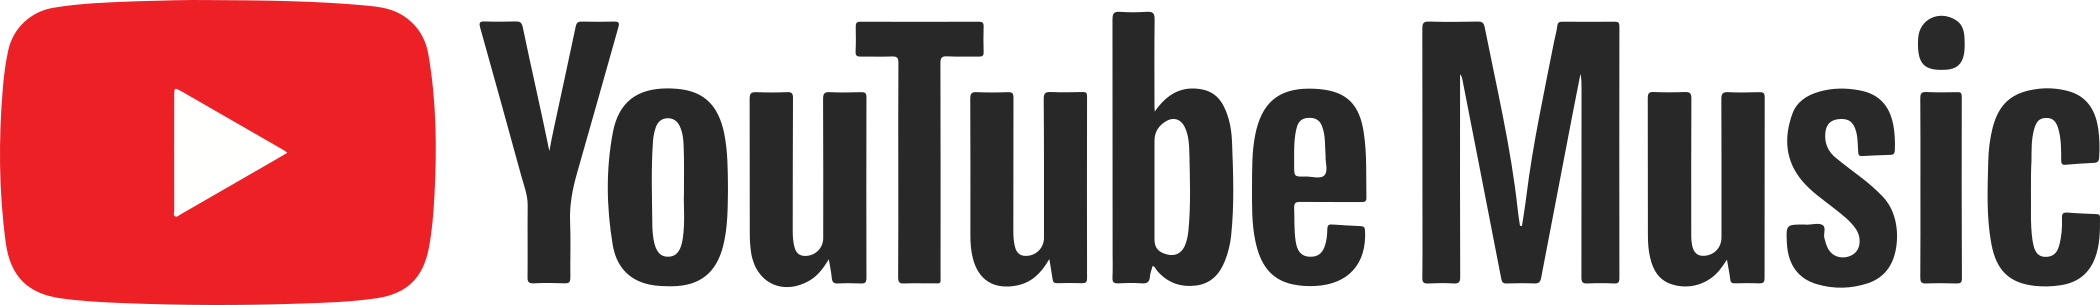 youtube music logo 5 - Youtube Music Logo